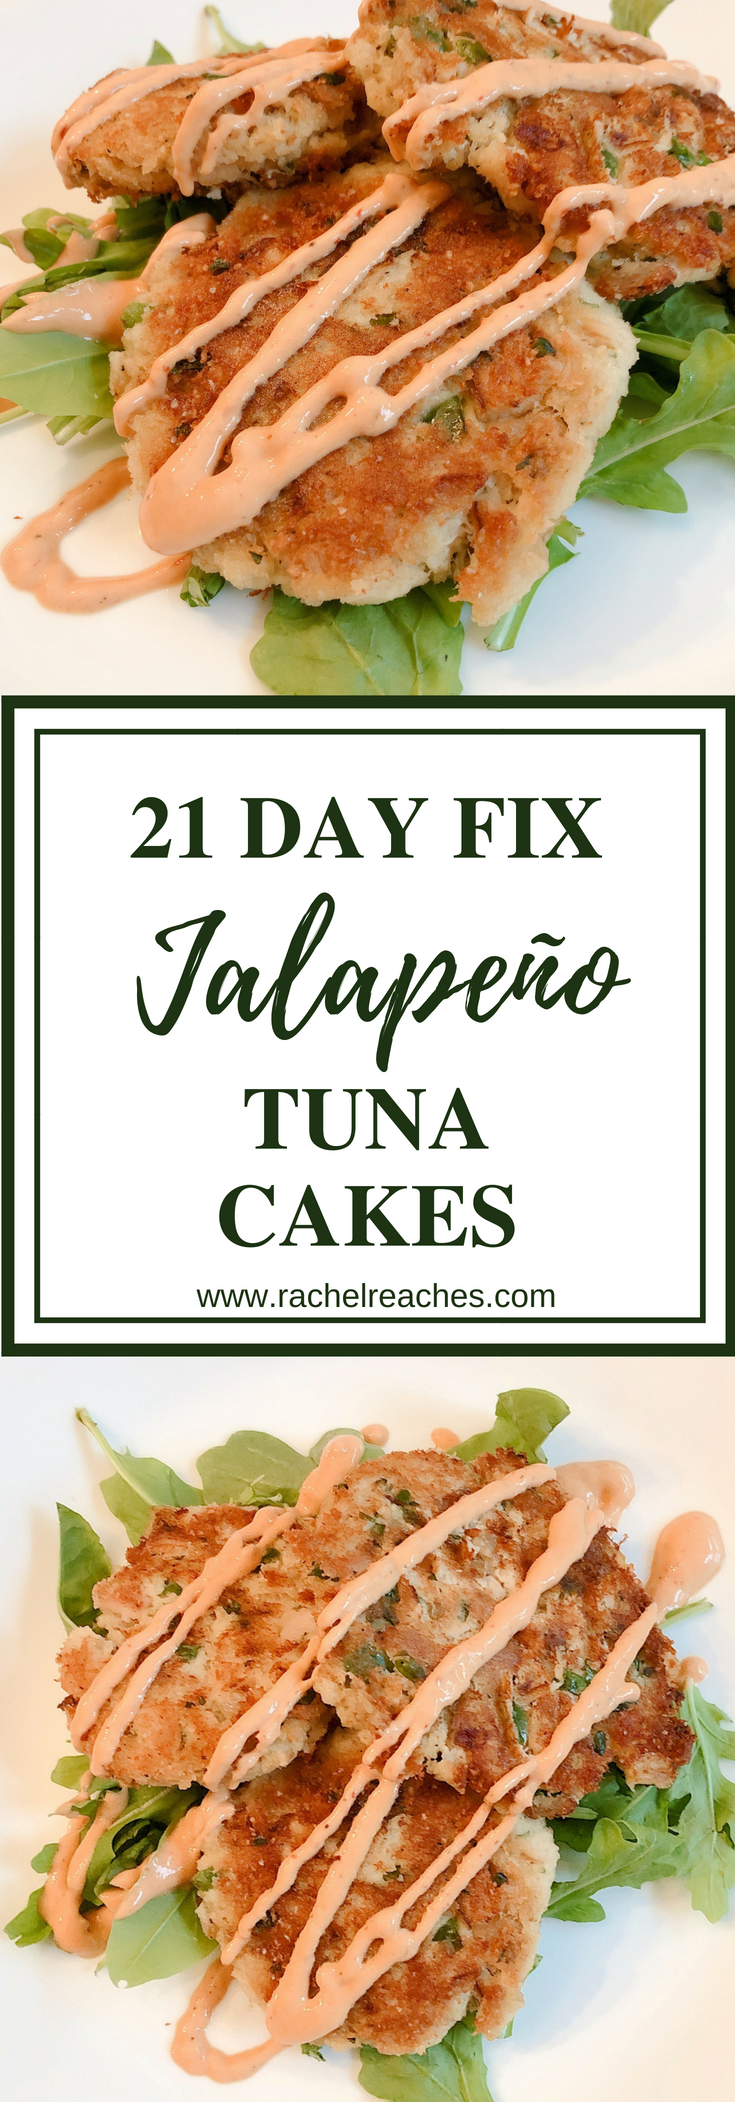 Jalapeno Tuna Cakes Pin - 21 Day Fix.png